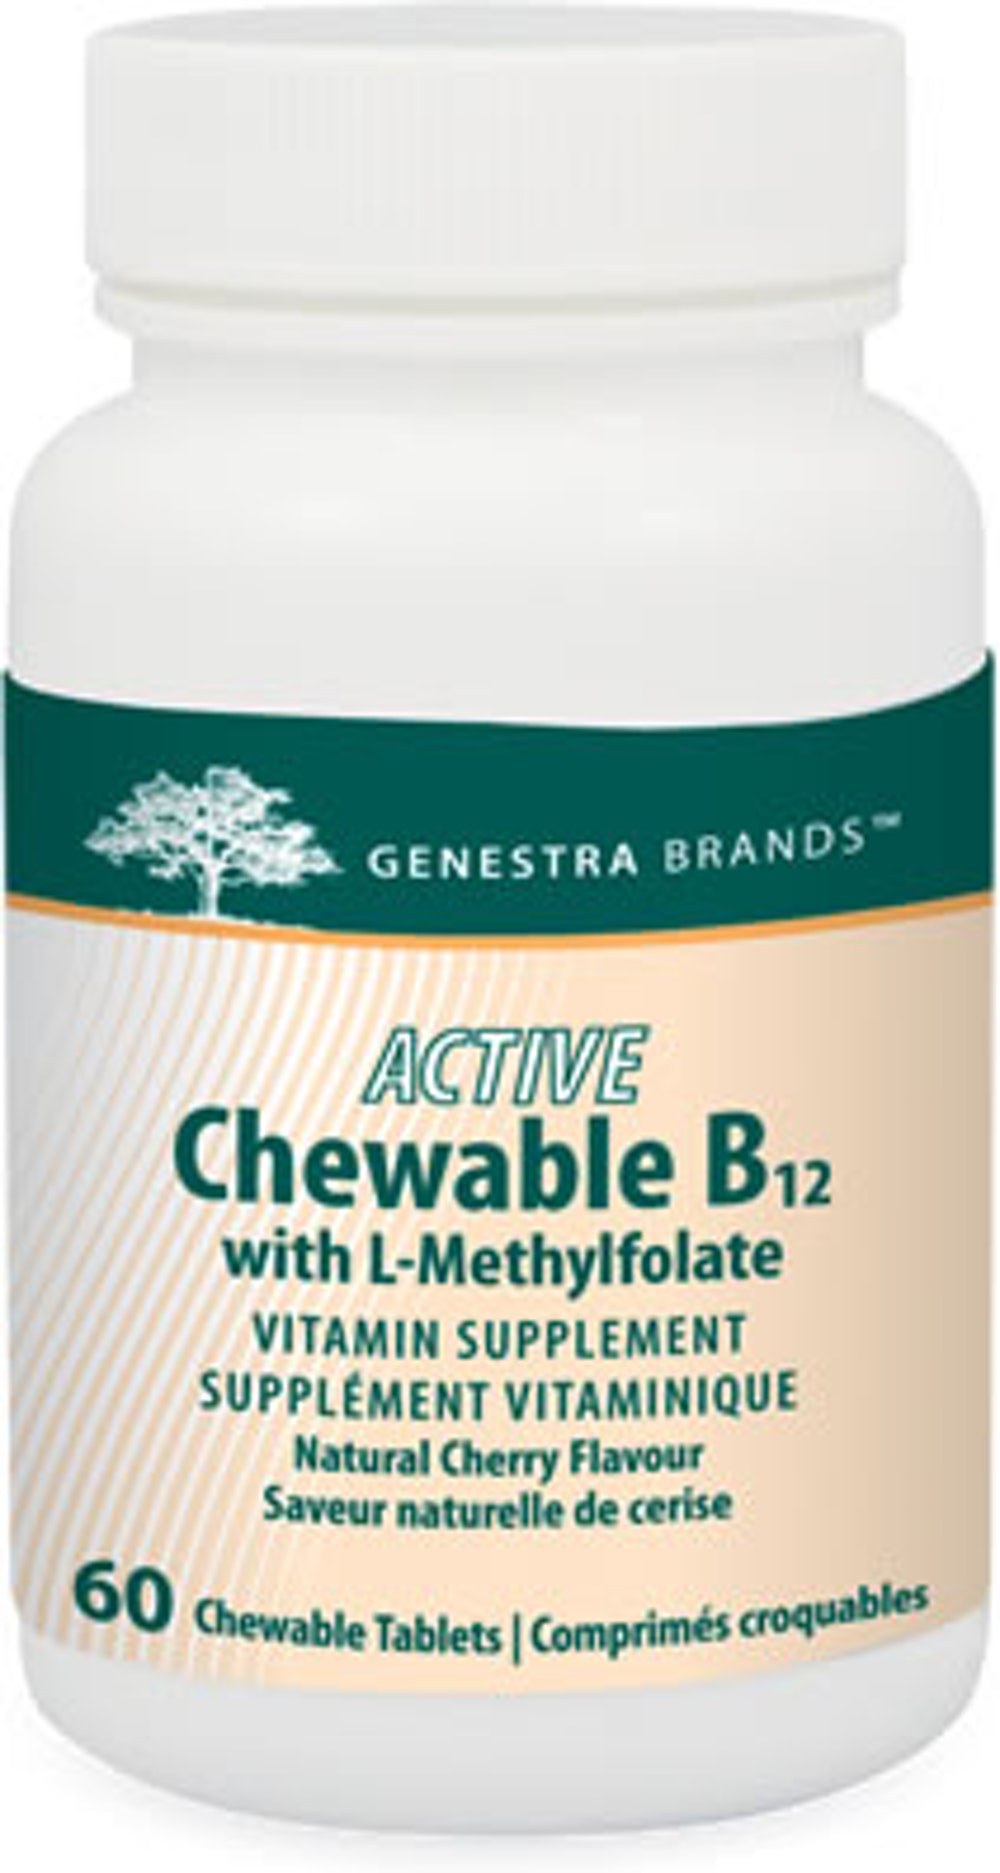 Active Chewable B12 avec L-Methylfolate